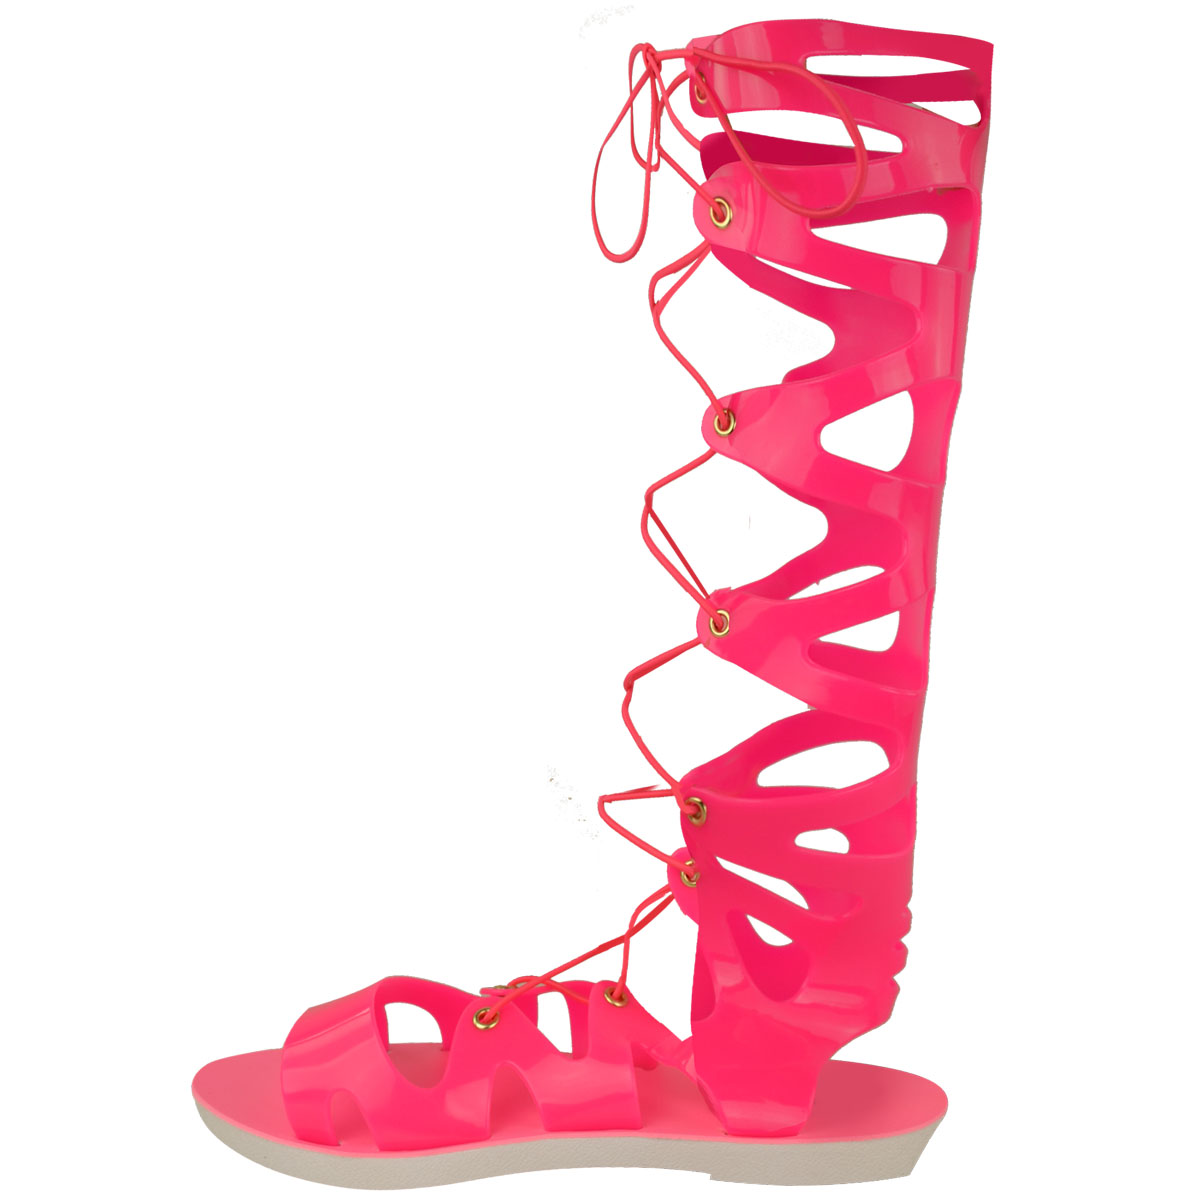 Womens-Ladies-Flat-Knee-High-Gladiator-Sandals-Strappy-Beach-Cut-Out-Boots-Size thumbnail 8